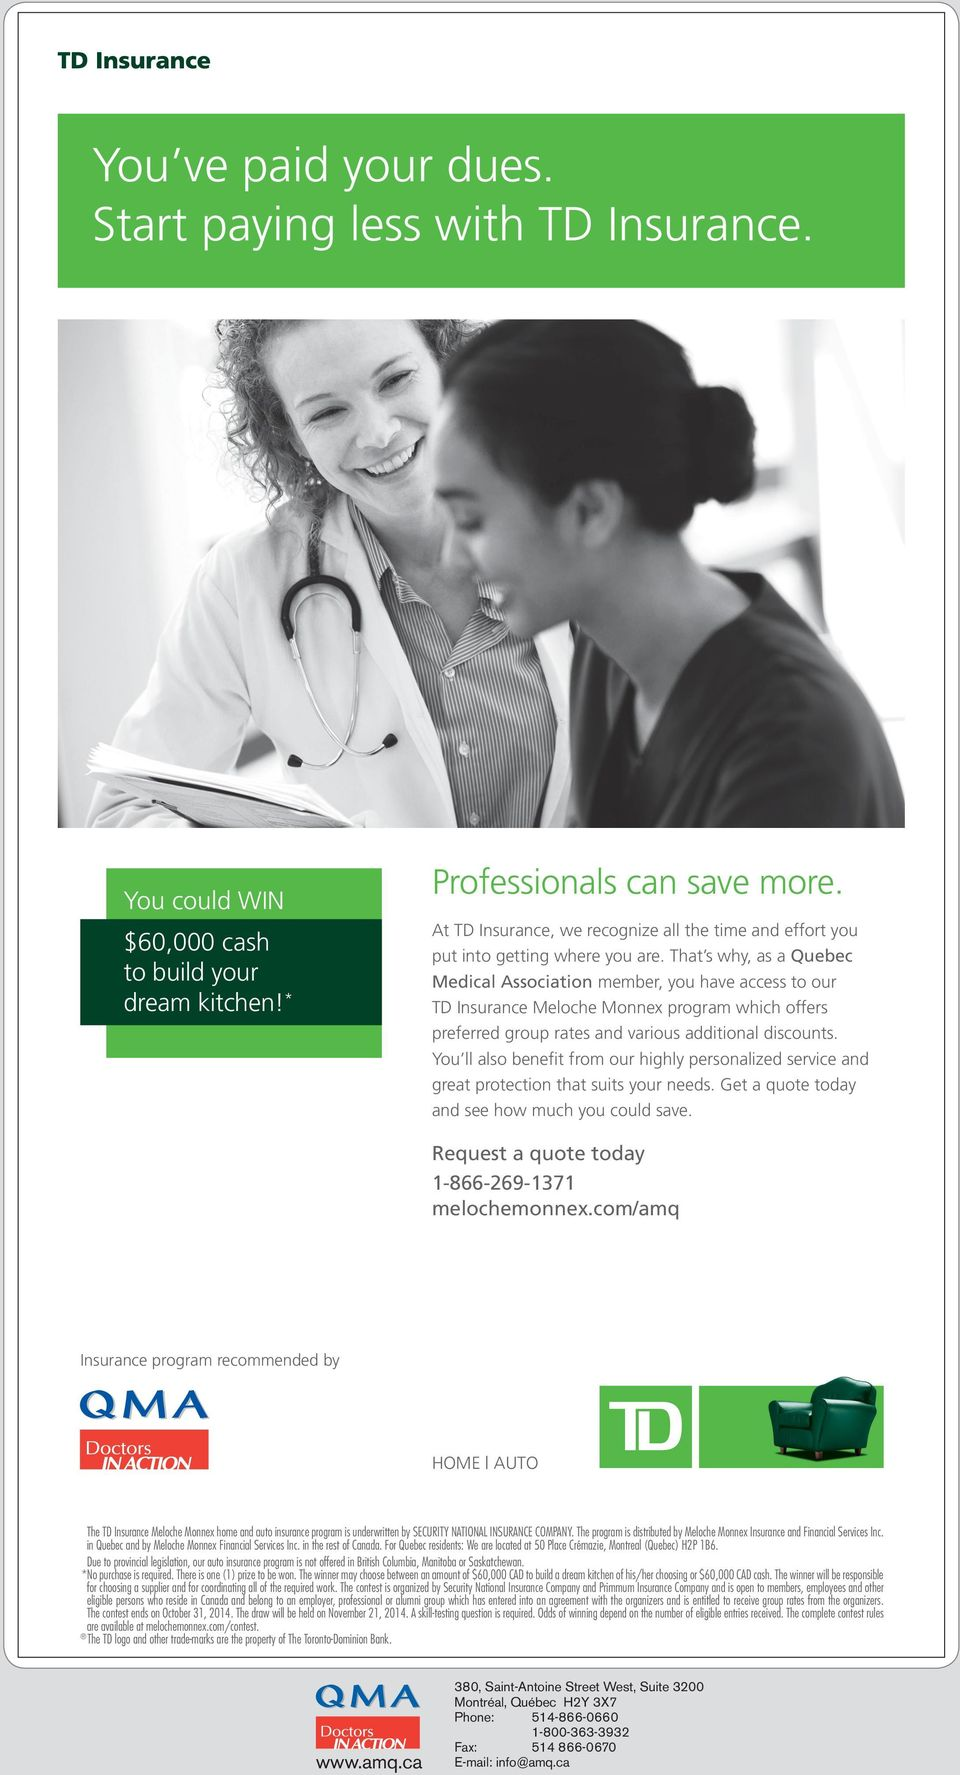 That s why, as a Quebec Medical Association member, you have access to our TD Insurance Meloche Monnex program which offers preferred group rates and various additional discounts.